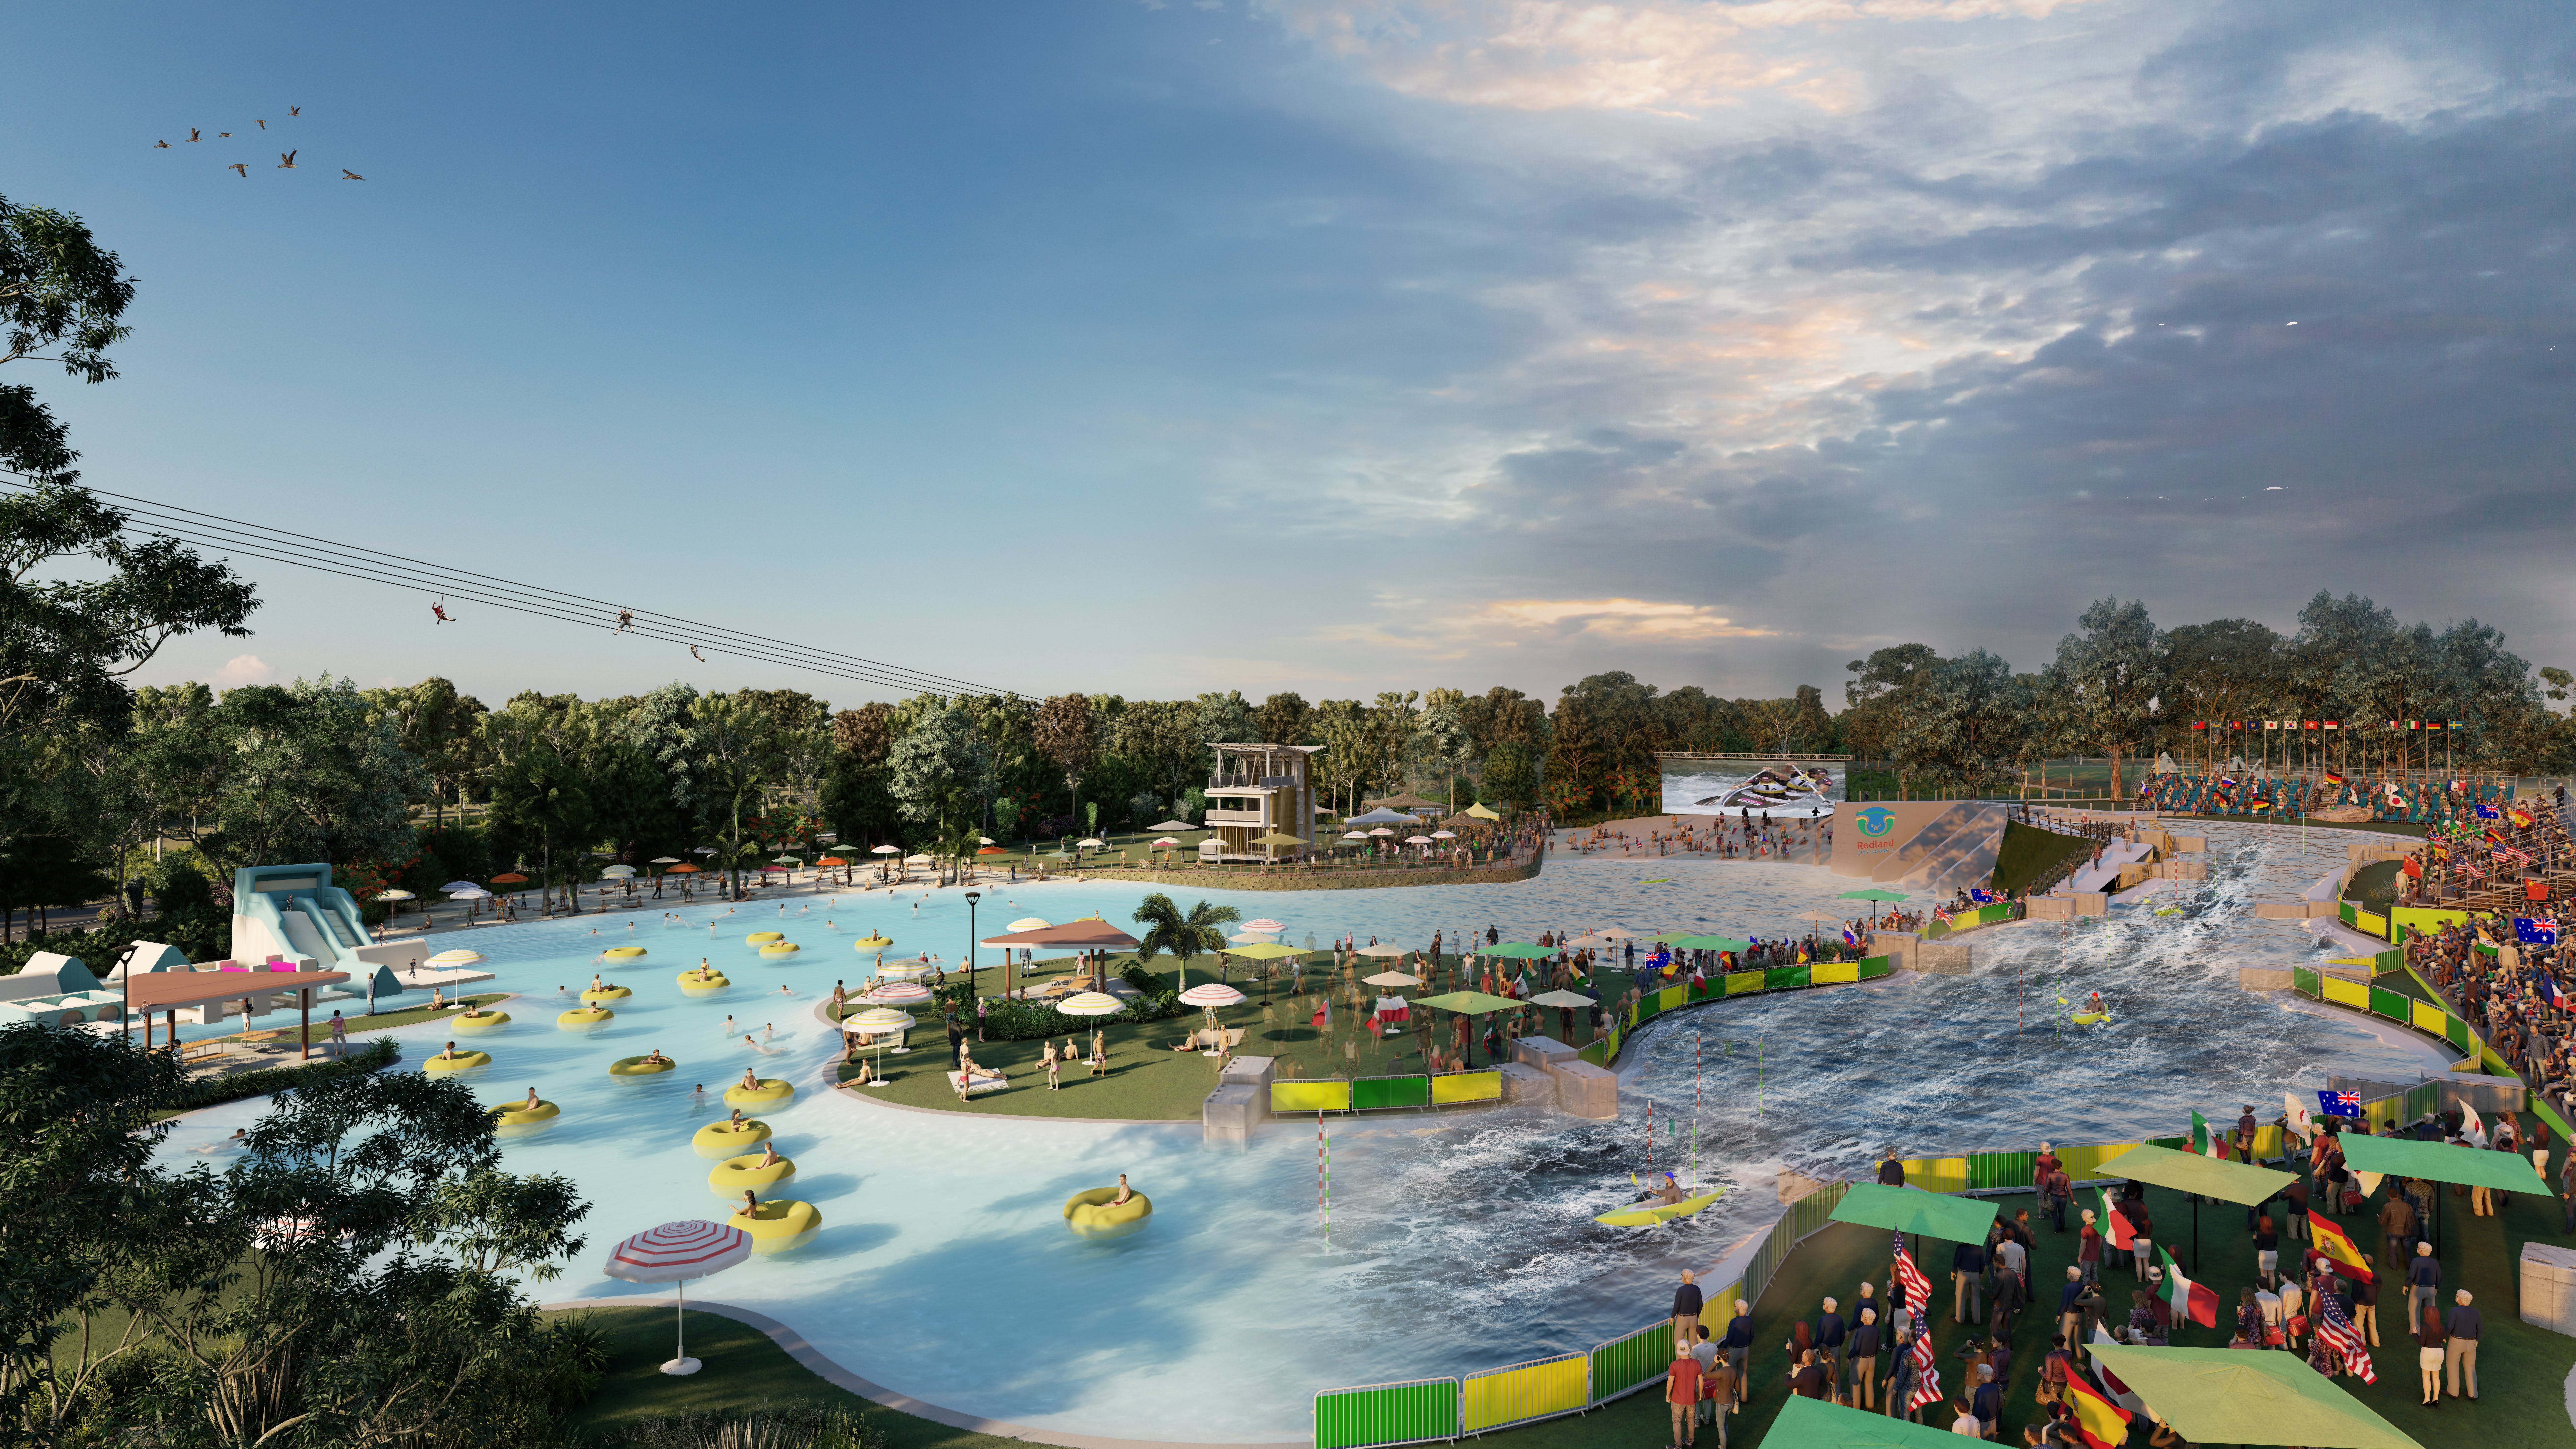 Whitewater / lazy river